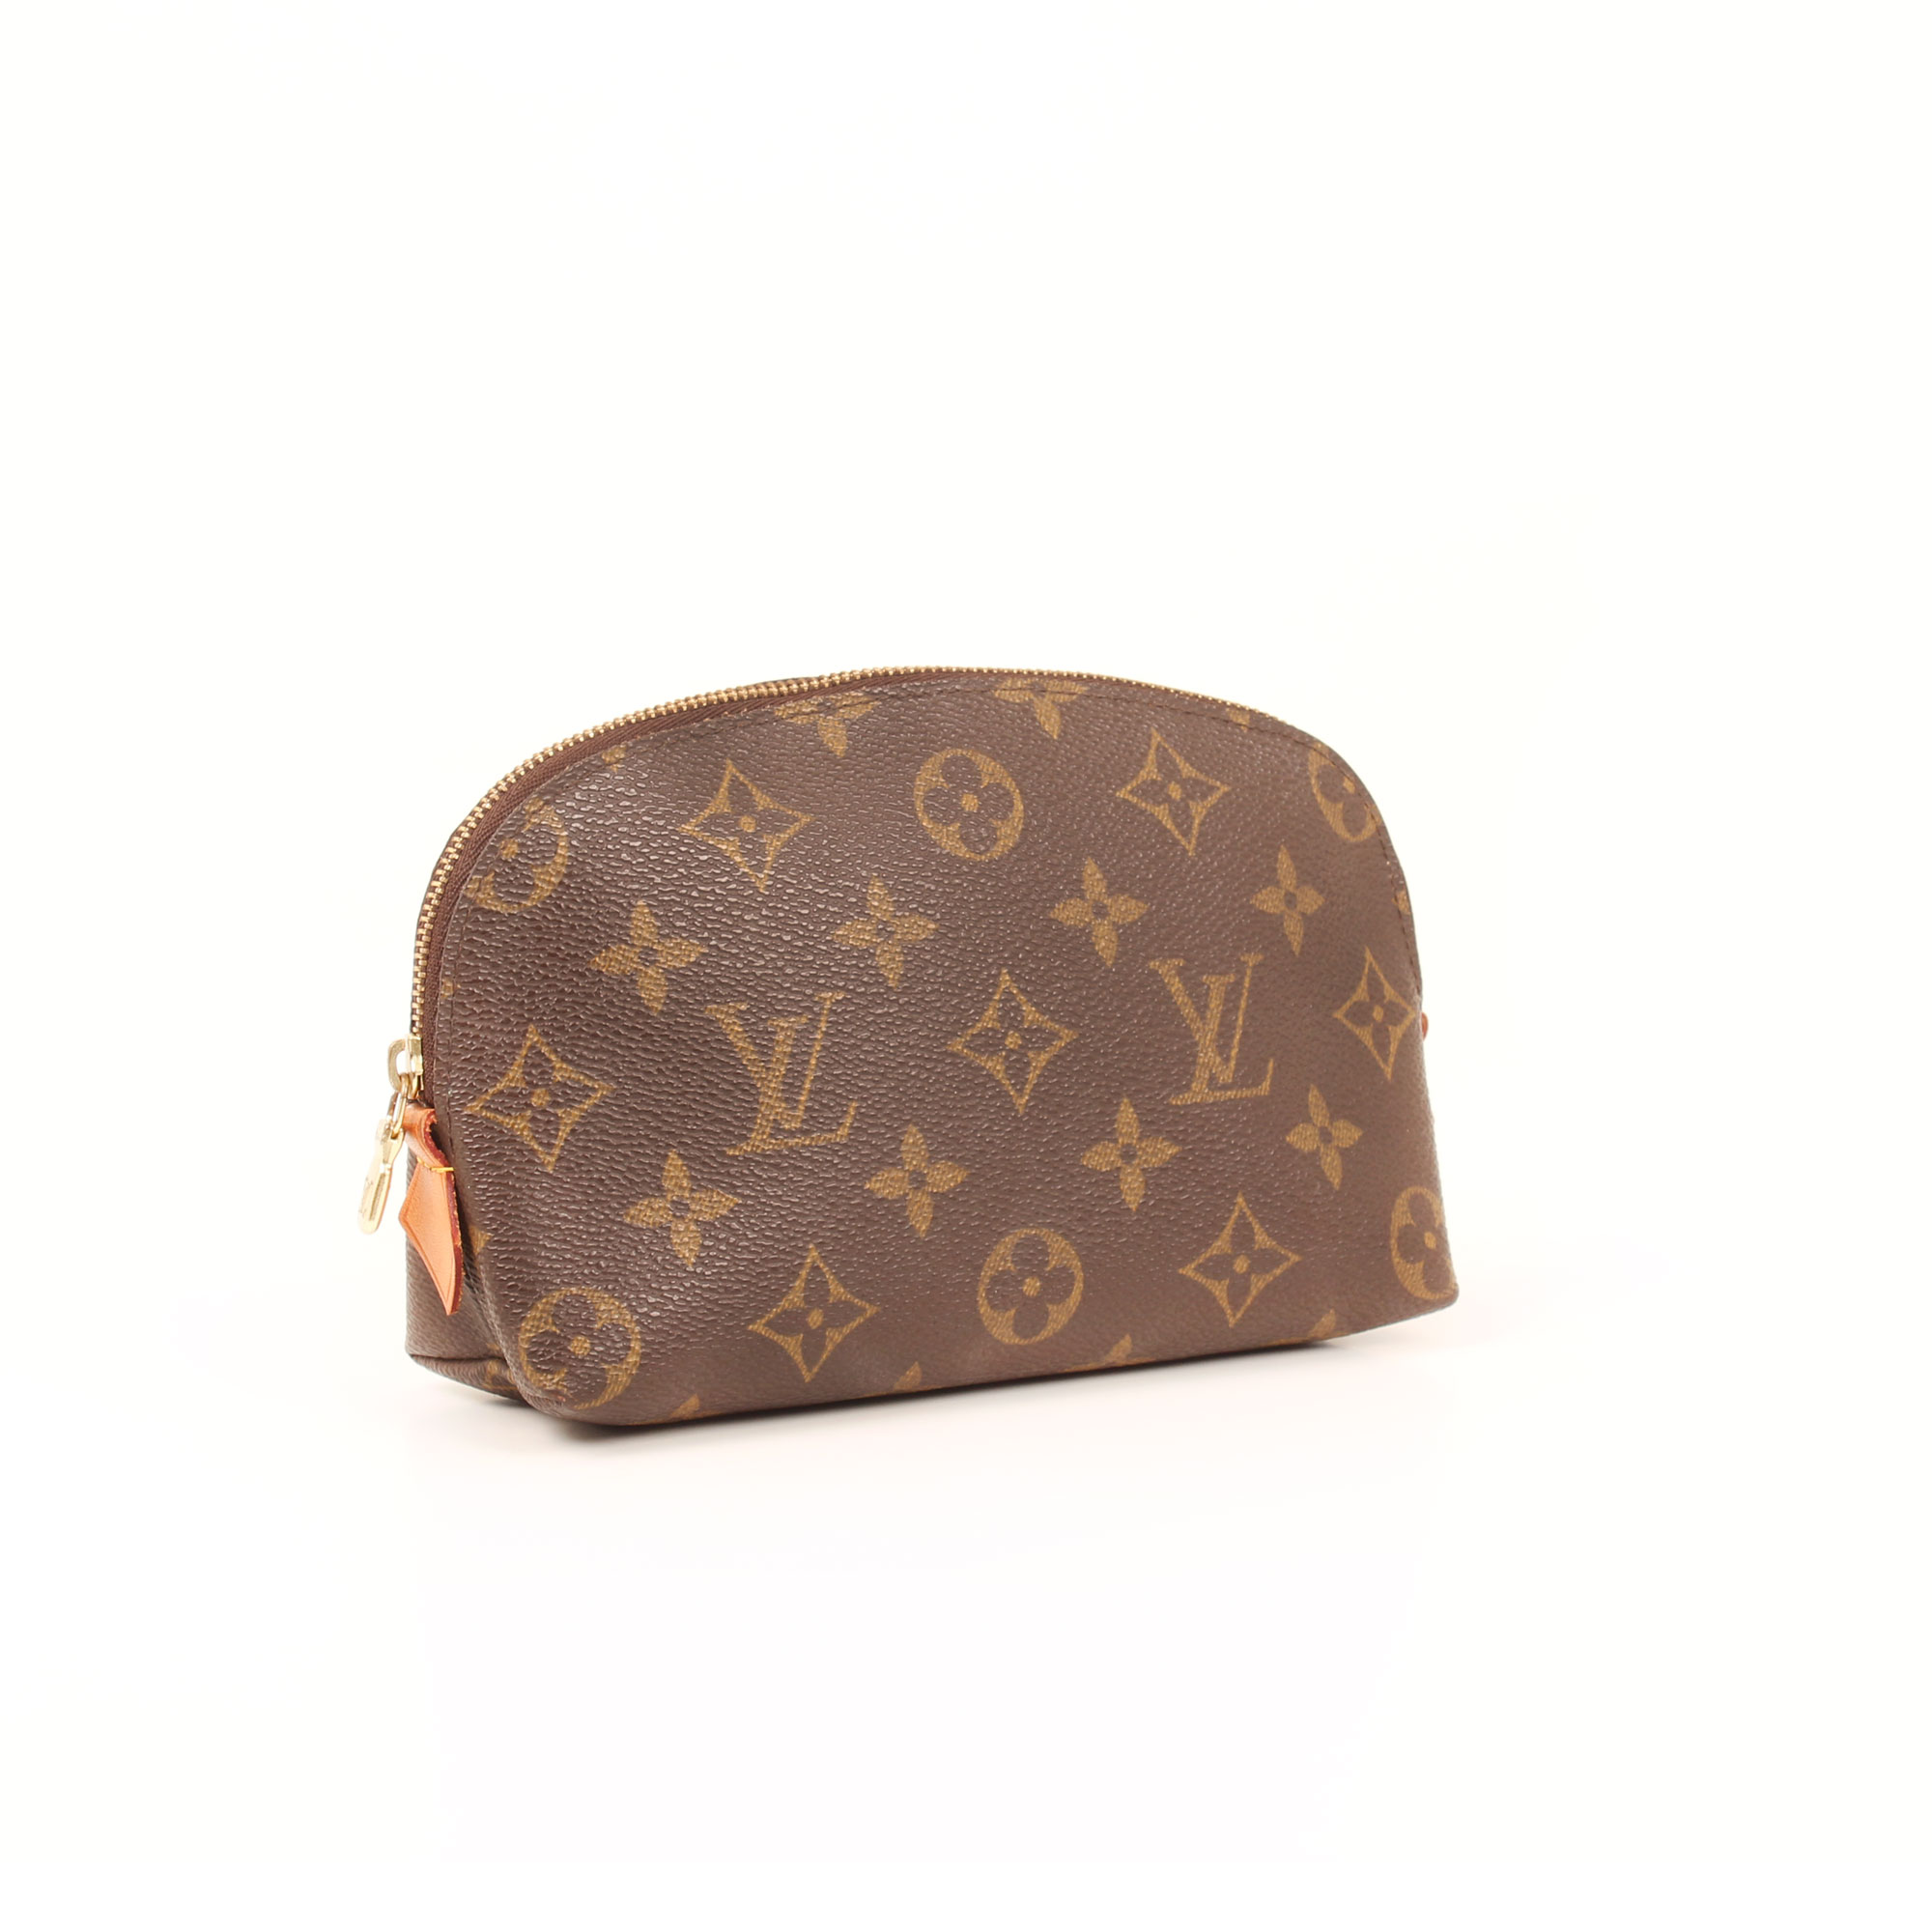 General imagen of louis vuitton cosmetic pouch monogram